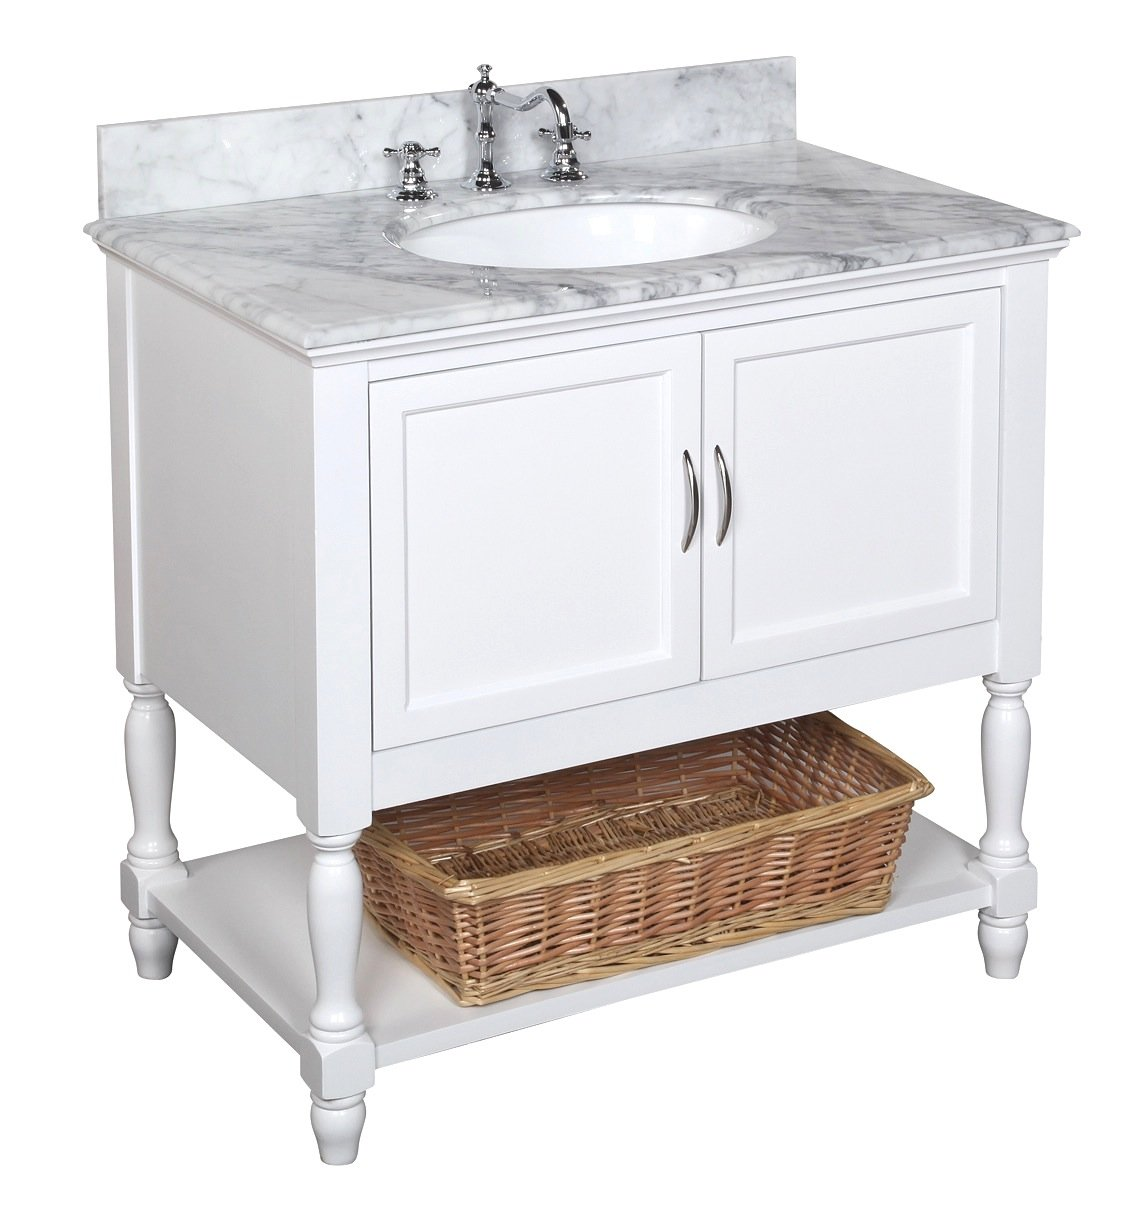 Kitchen Bath Collection KBC005WTCARR Beverly Bathroom Vanity with Marble Countertop Cabinet with Soft Close Function and Undermount Ceramic Sink ...  sc 1 st  Amazon.com & Kitchen Bath Collection KBC005WTCARR Beverly Bathroom Vanity with ...